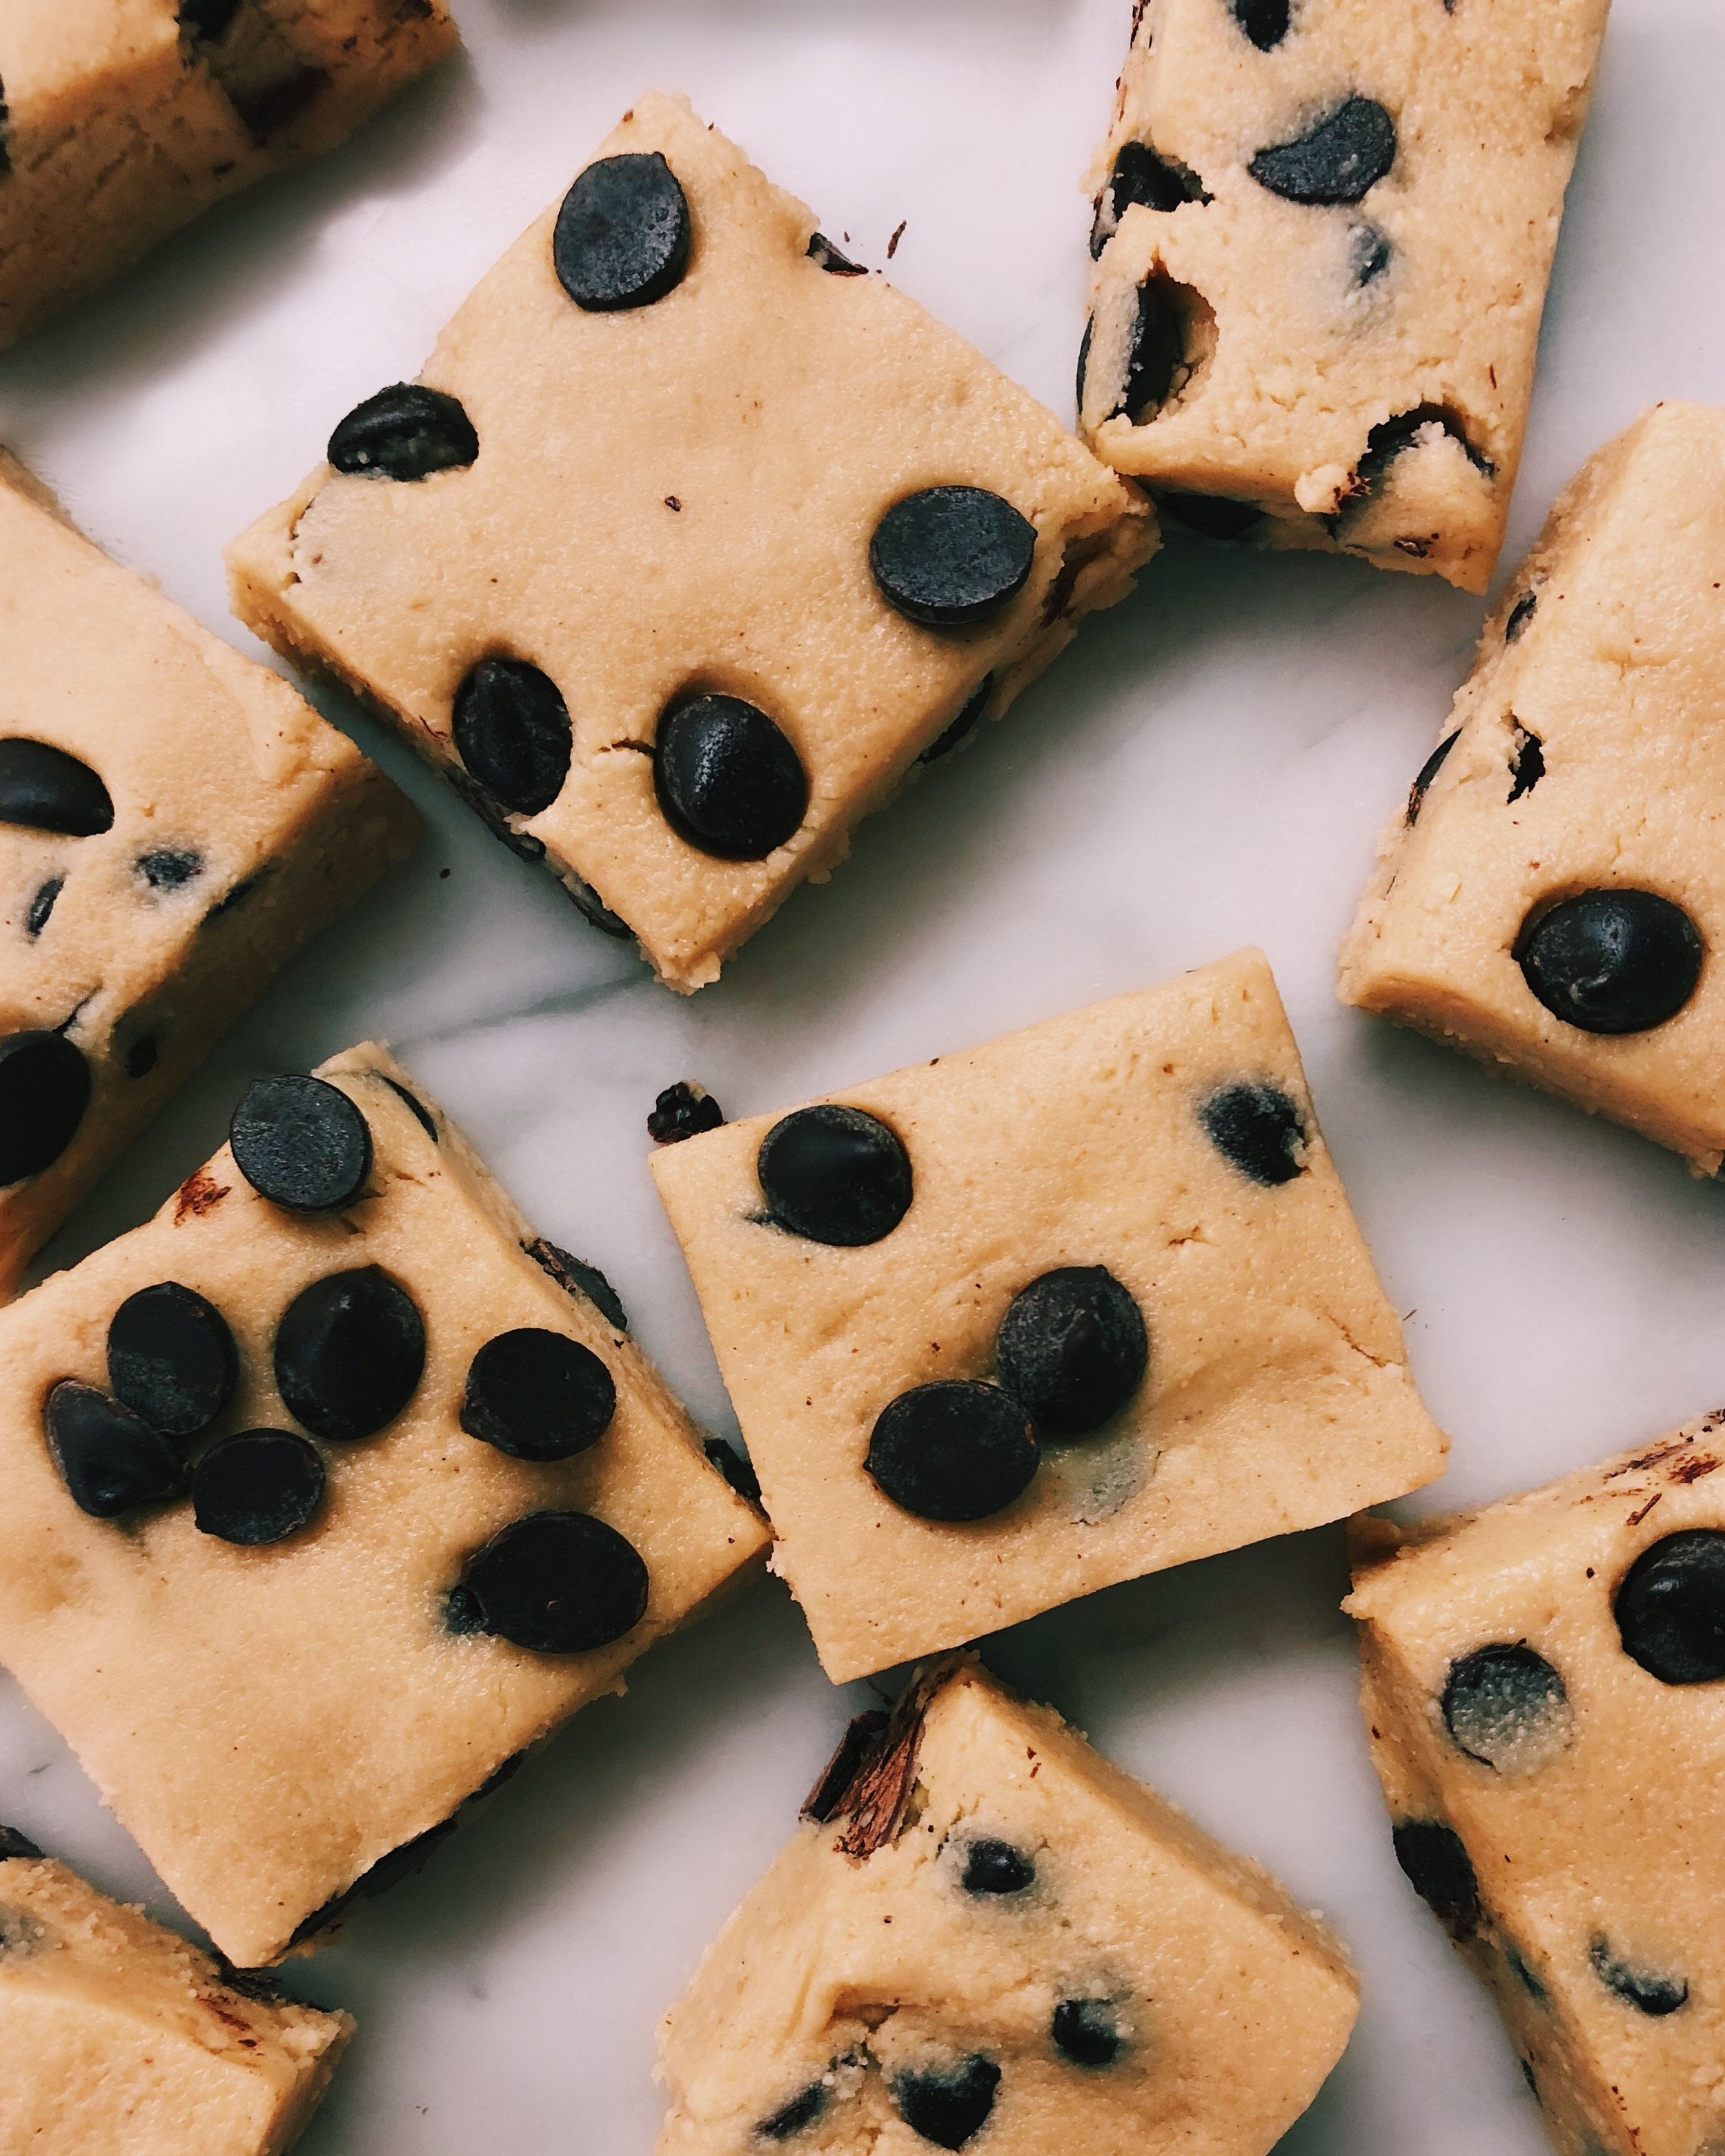 NO BAKE COOKIE DOUGH FUDGE - INGREDIENTS3 cups cashews1/4 cup coconut flour1/4 cup melted Wedderspoon raw beechwood honey1/2 tsp vanilla1/2 tsp cinnamon or nutmeg1/4 tsp salt6 tb melted coconut oil1 cup dairy free chocolate chips